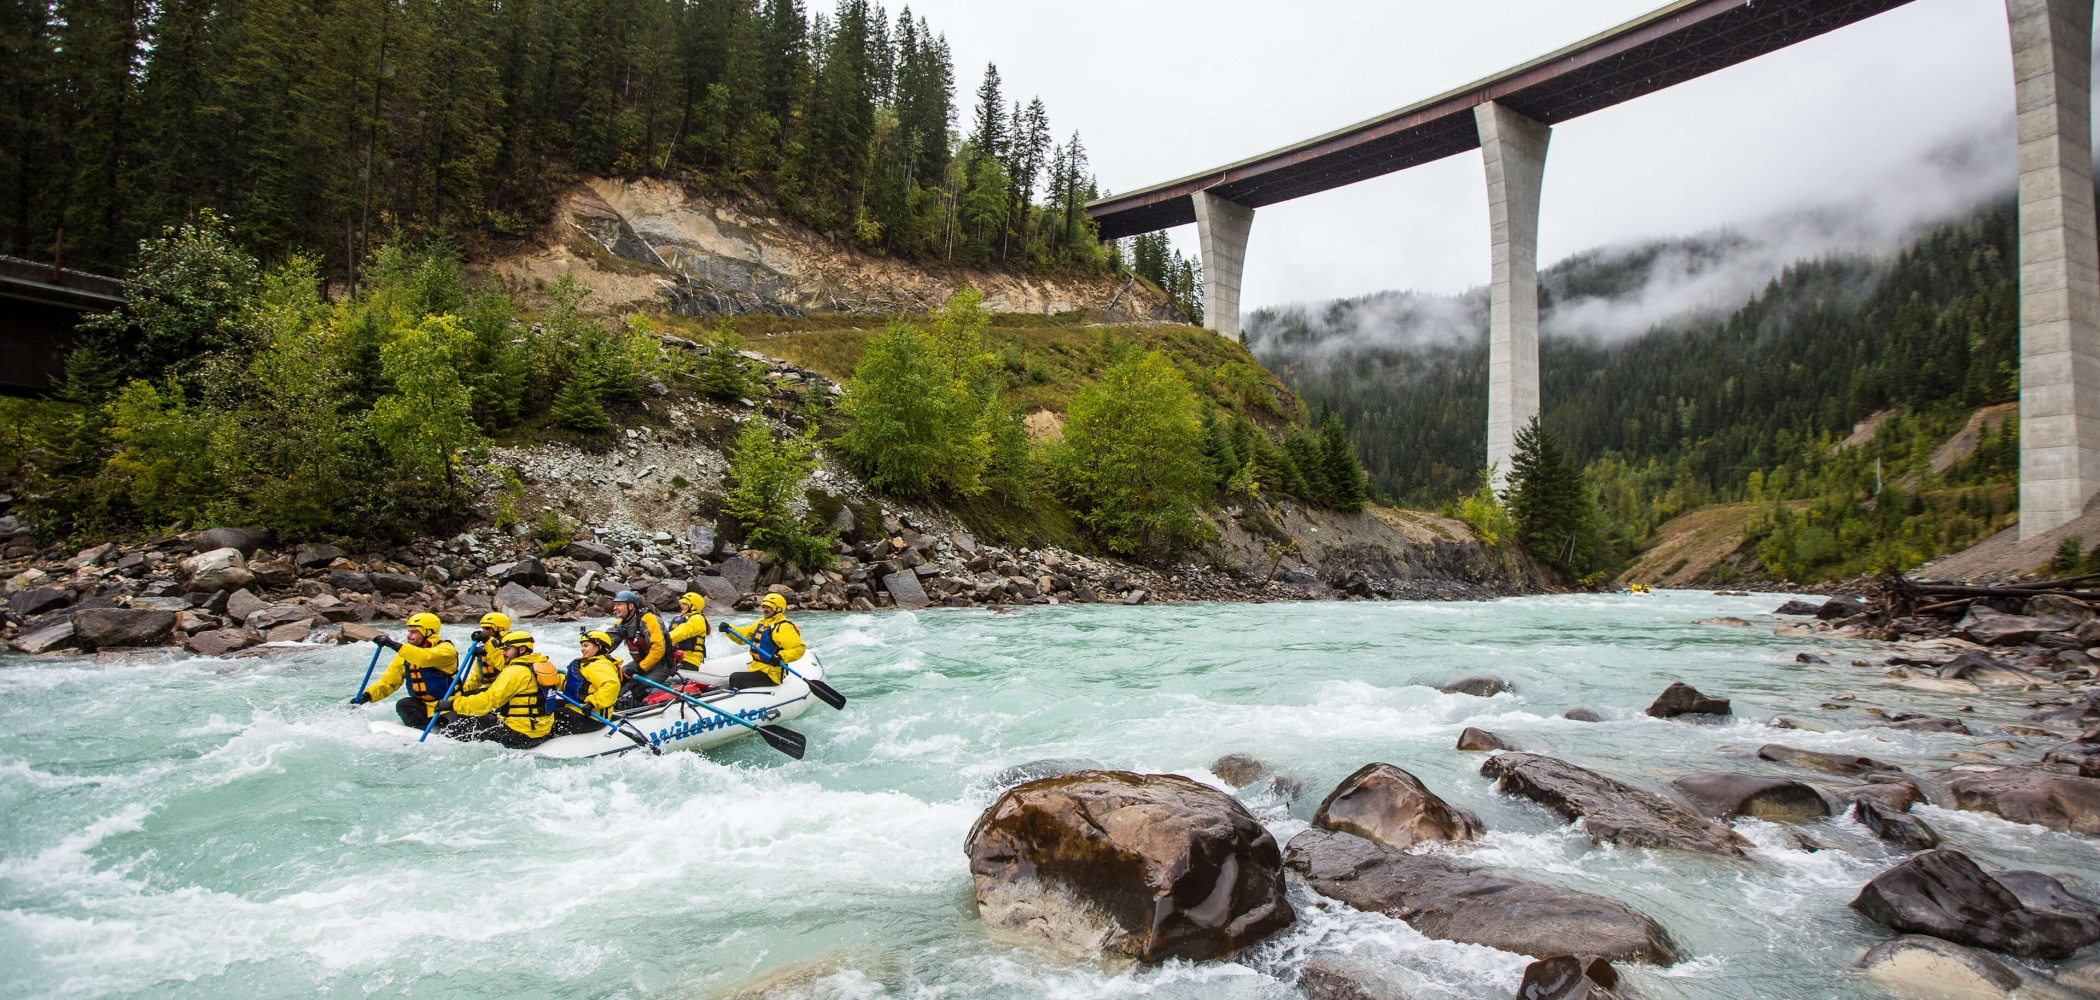 Rafting in Yoho National Park